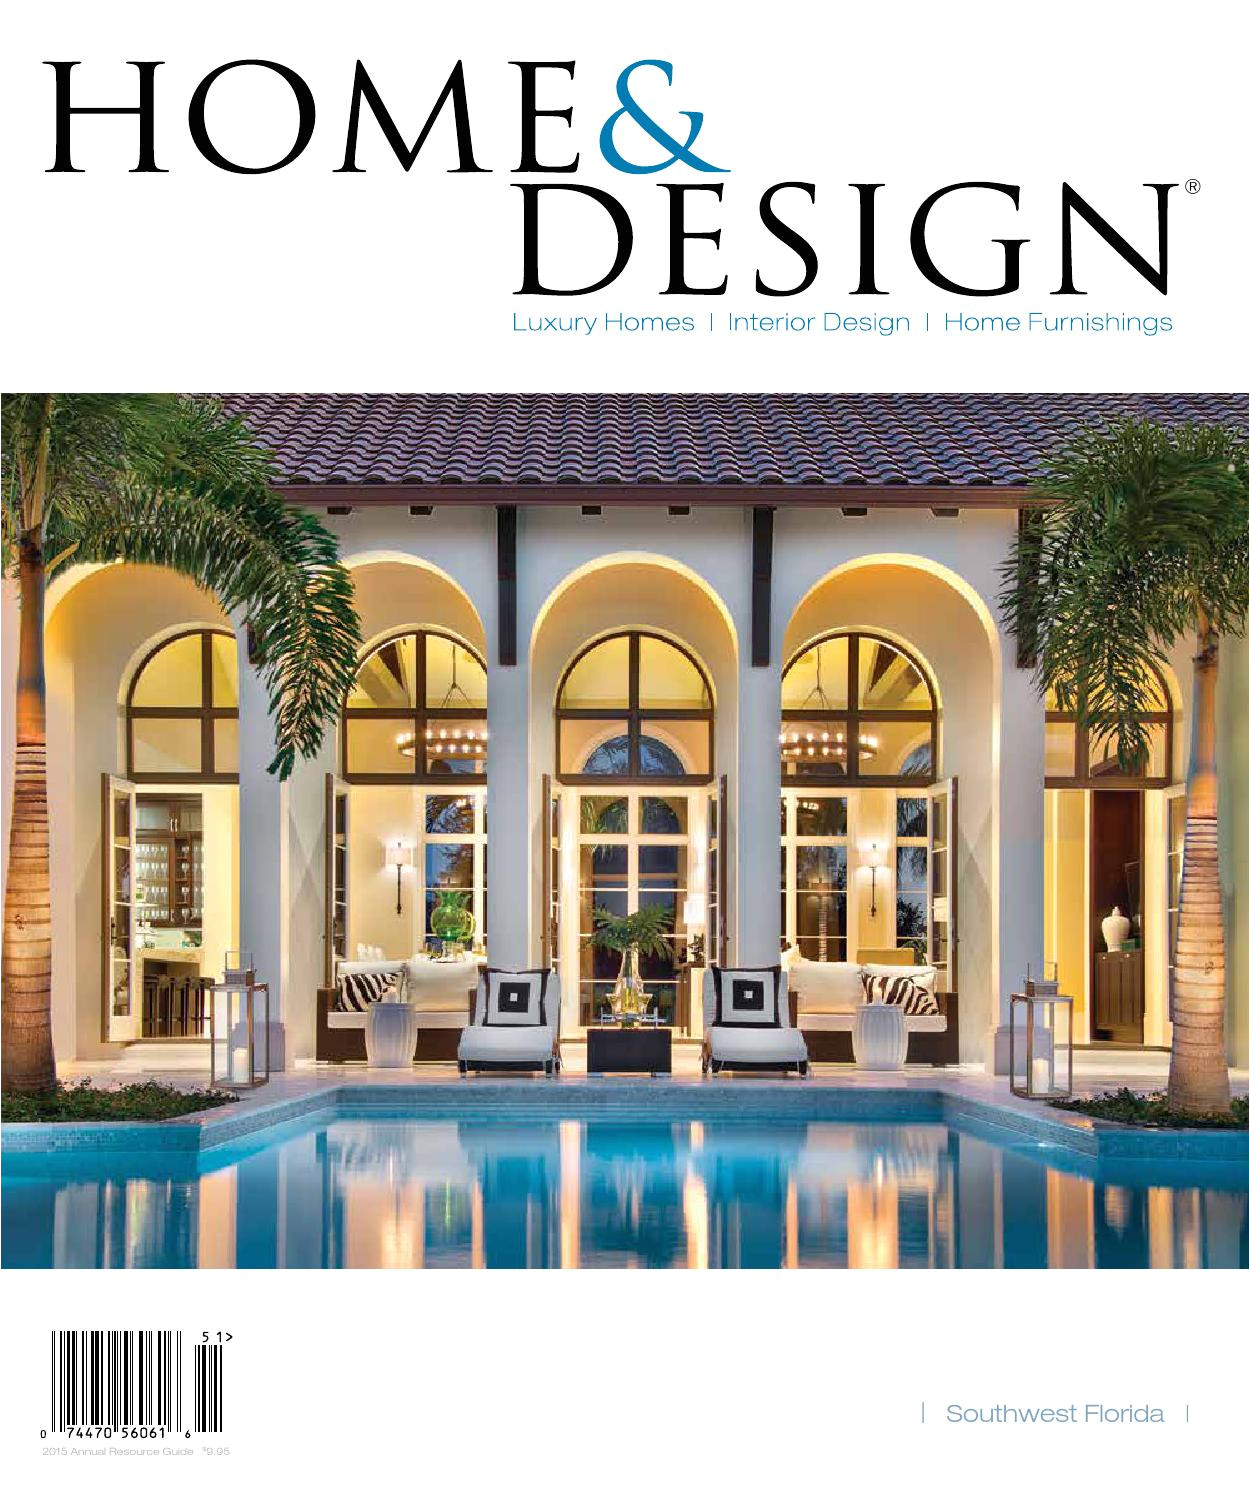 home design magazine annual resource guide 2015 southwest florida edition by jennifer evans issuu